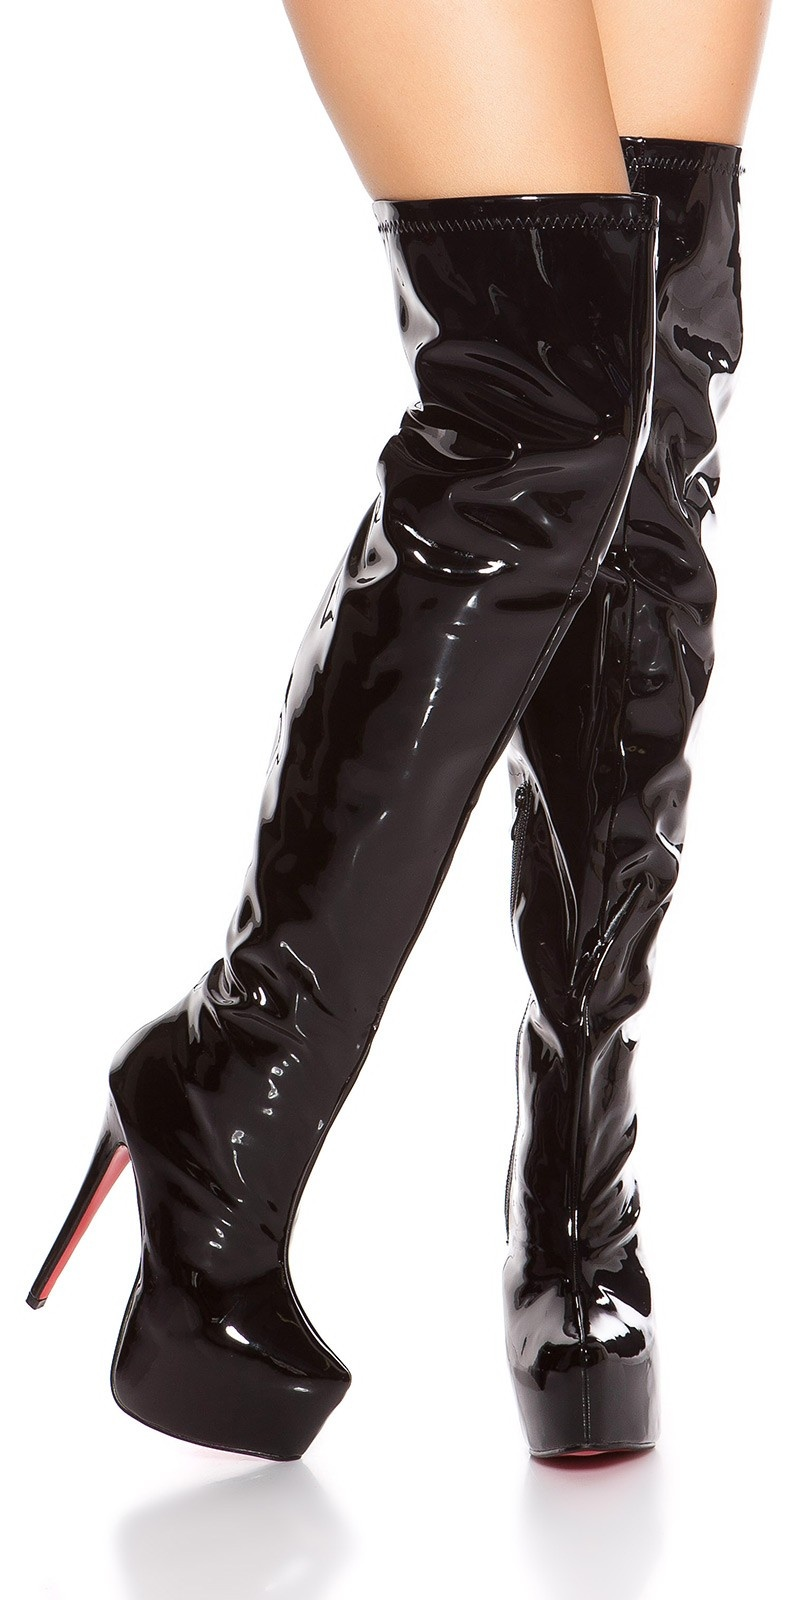 Sexy platform overknees boots patent leather look Black